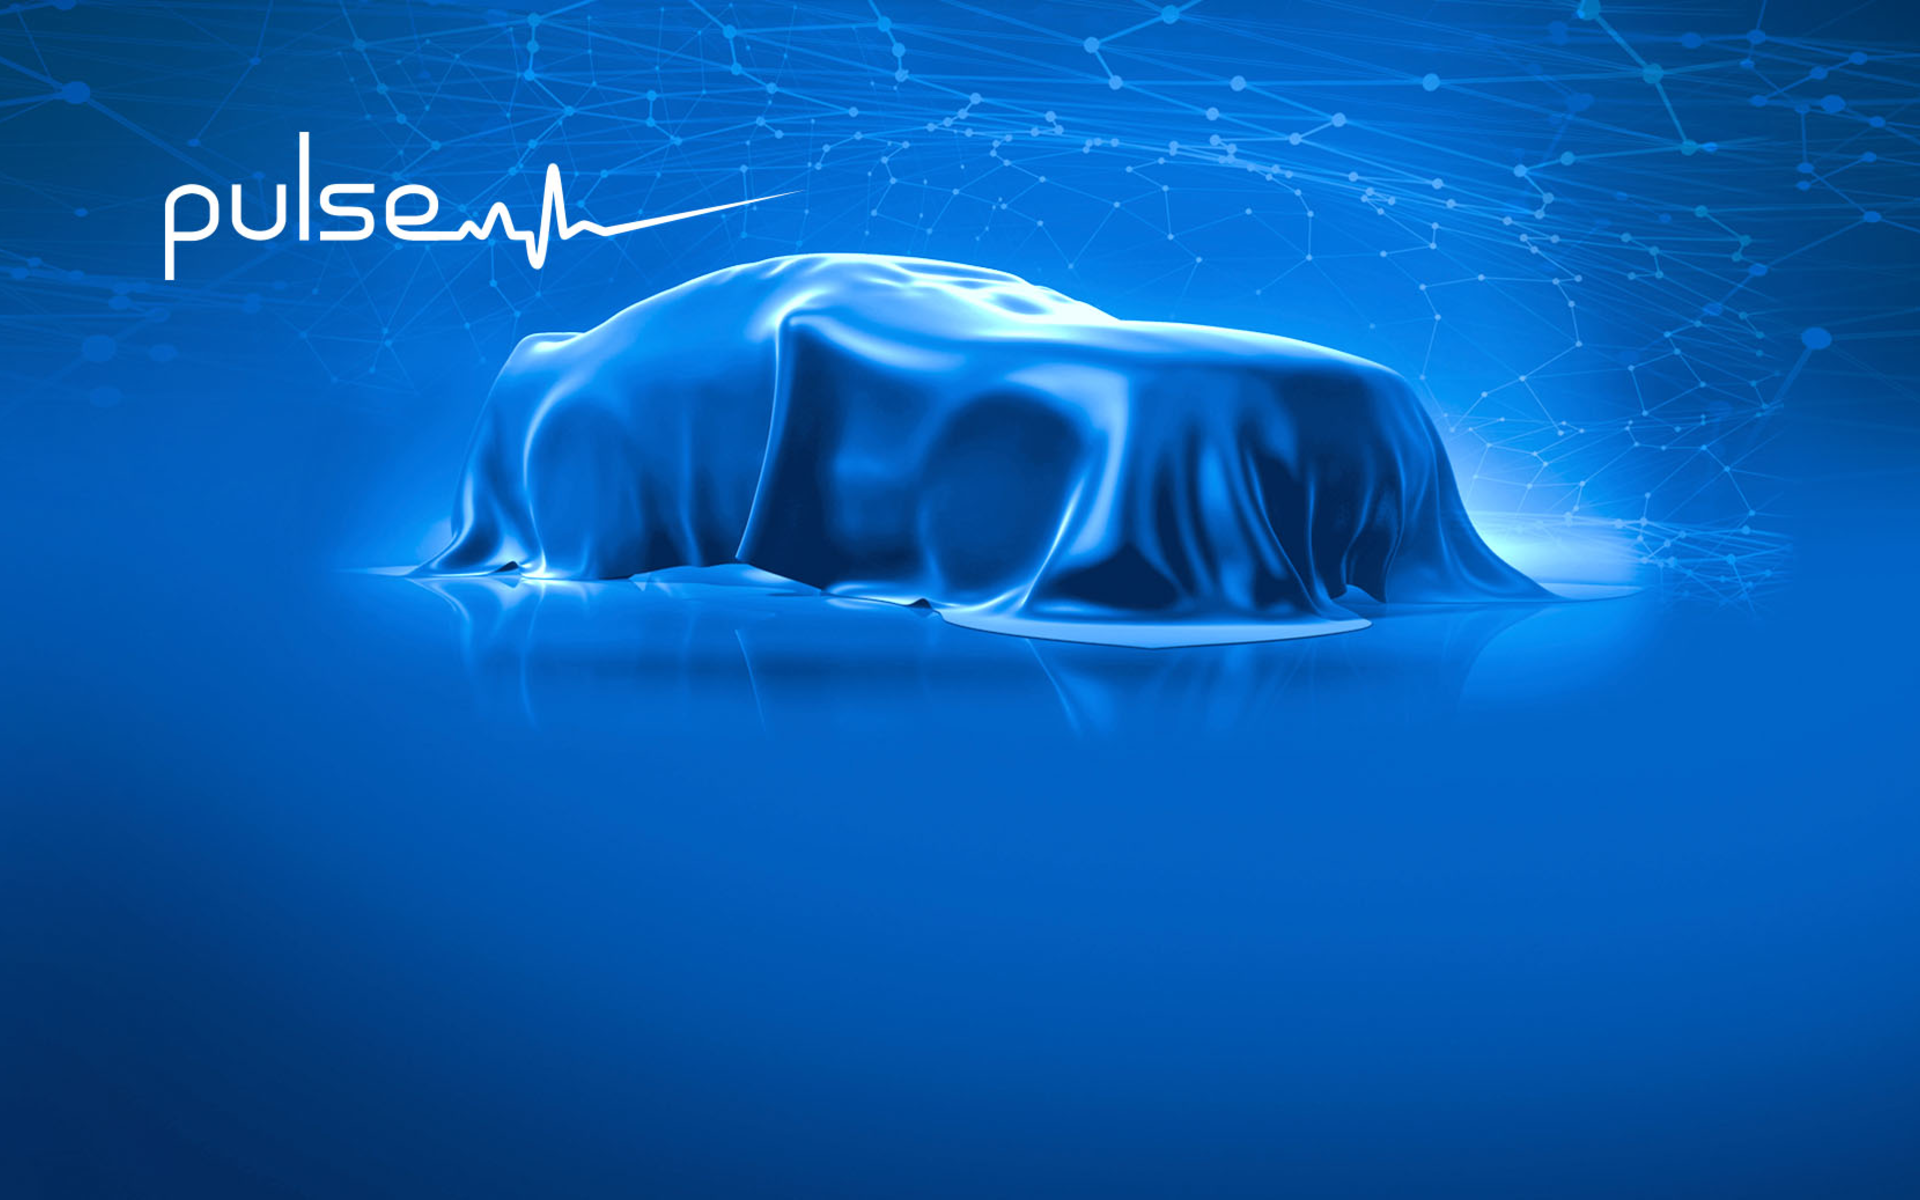 Car under blue curtain and pulse text